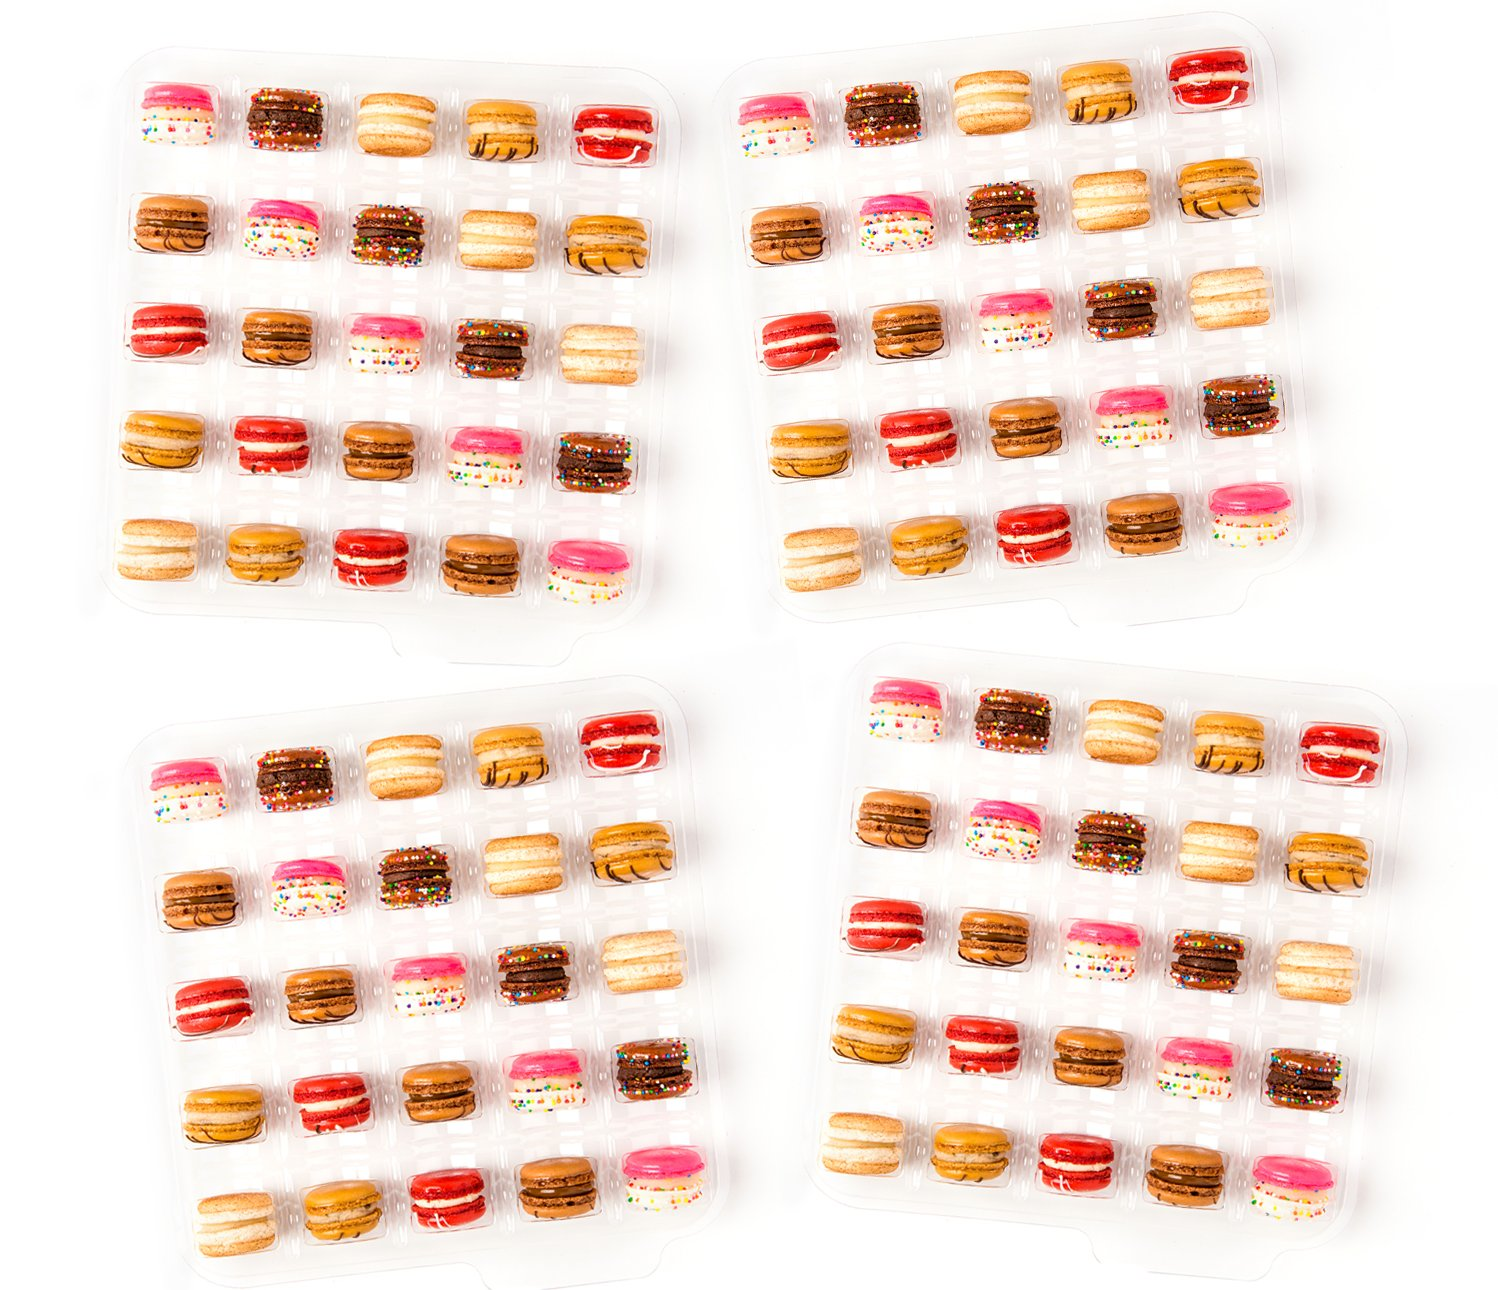 Baked by Melissa Macarons The Mac - Double Stuffed Assorted Bite-Size Macarons, 100 Count